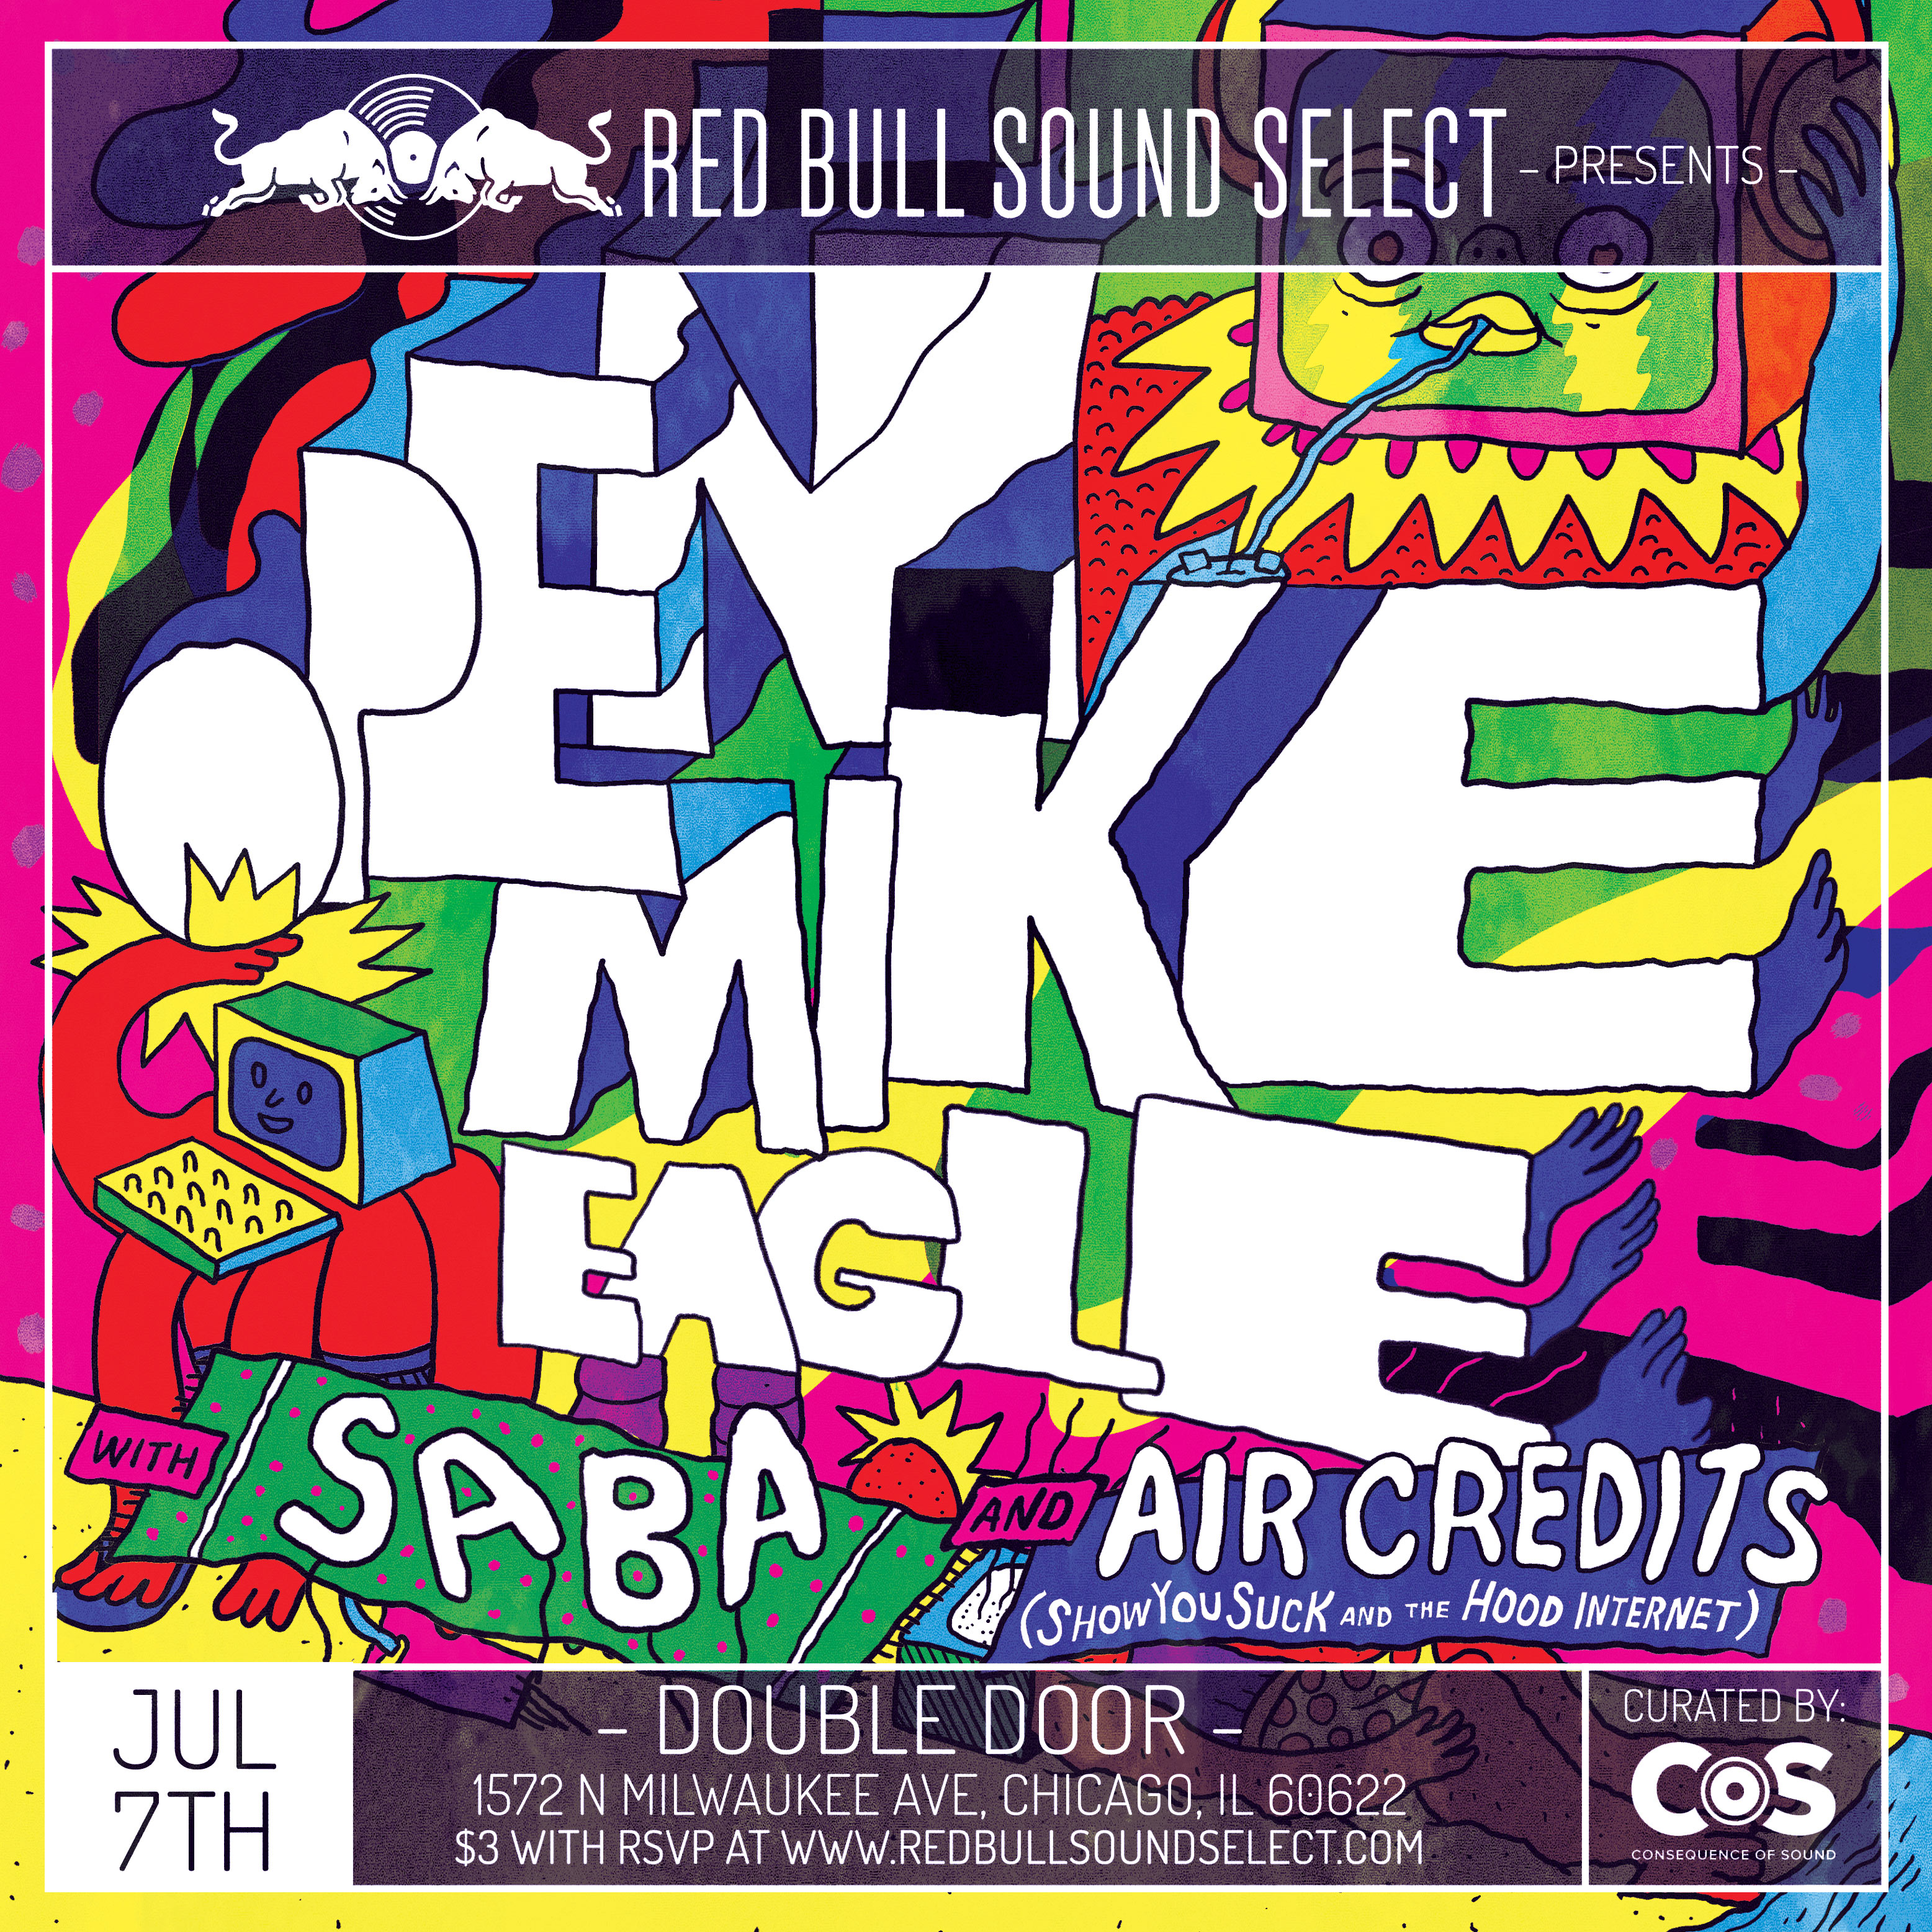 RB-CoS_PRESENTS-OPENMIKEEAGLE_Square